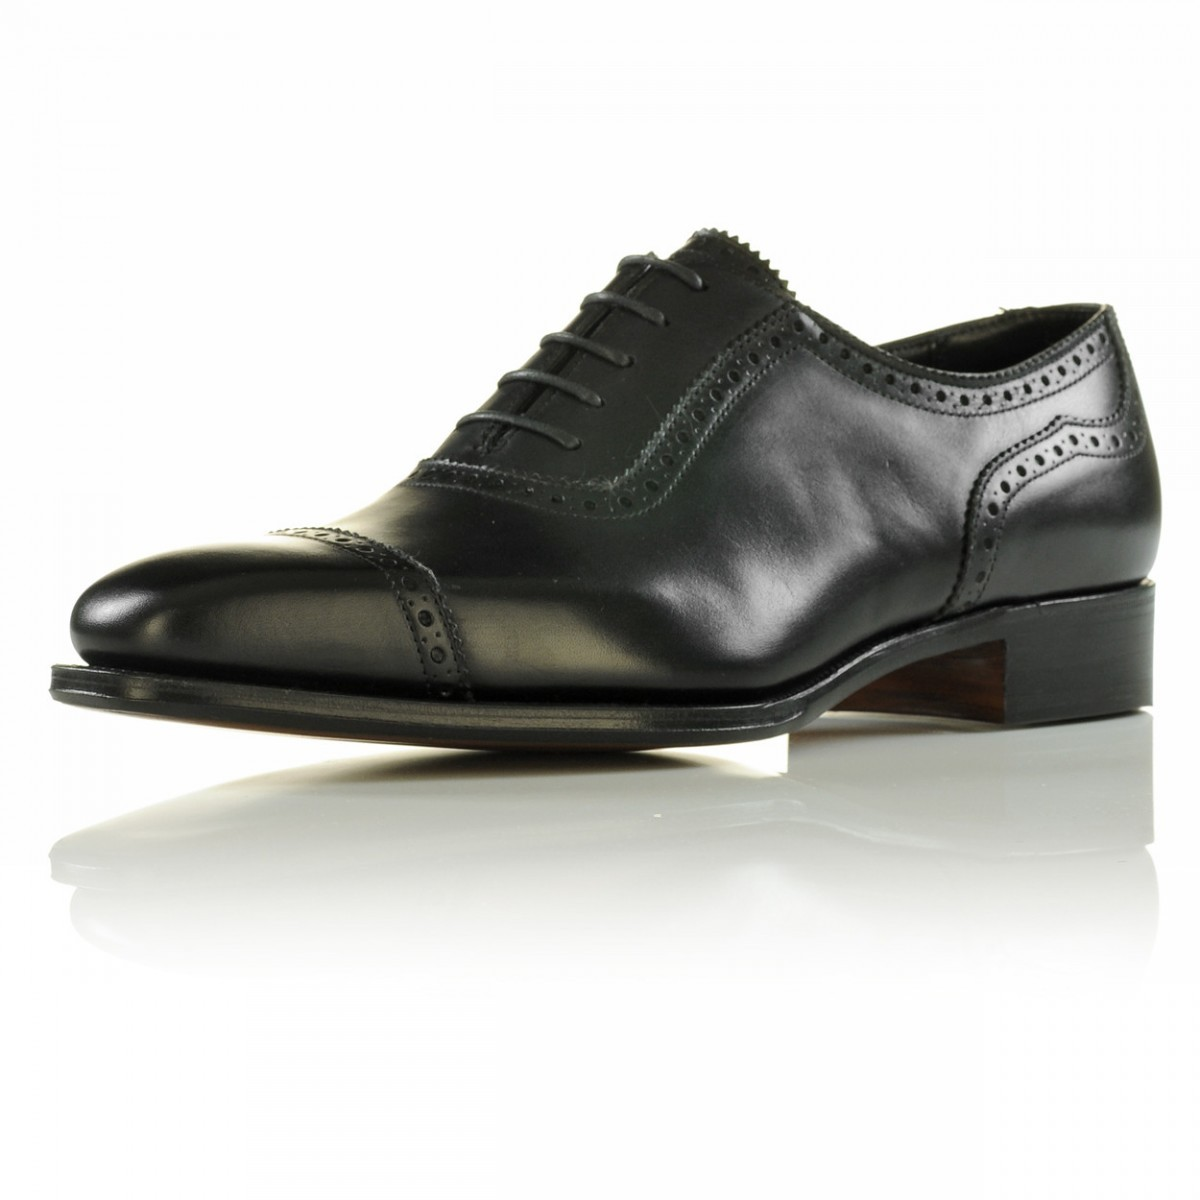 HANDMADE OXFORD BROGUE STYLE SHOES MEN DRESS SHOES BLACK FASHION LEATHER SHOES - Dress/Formal